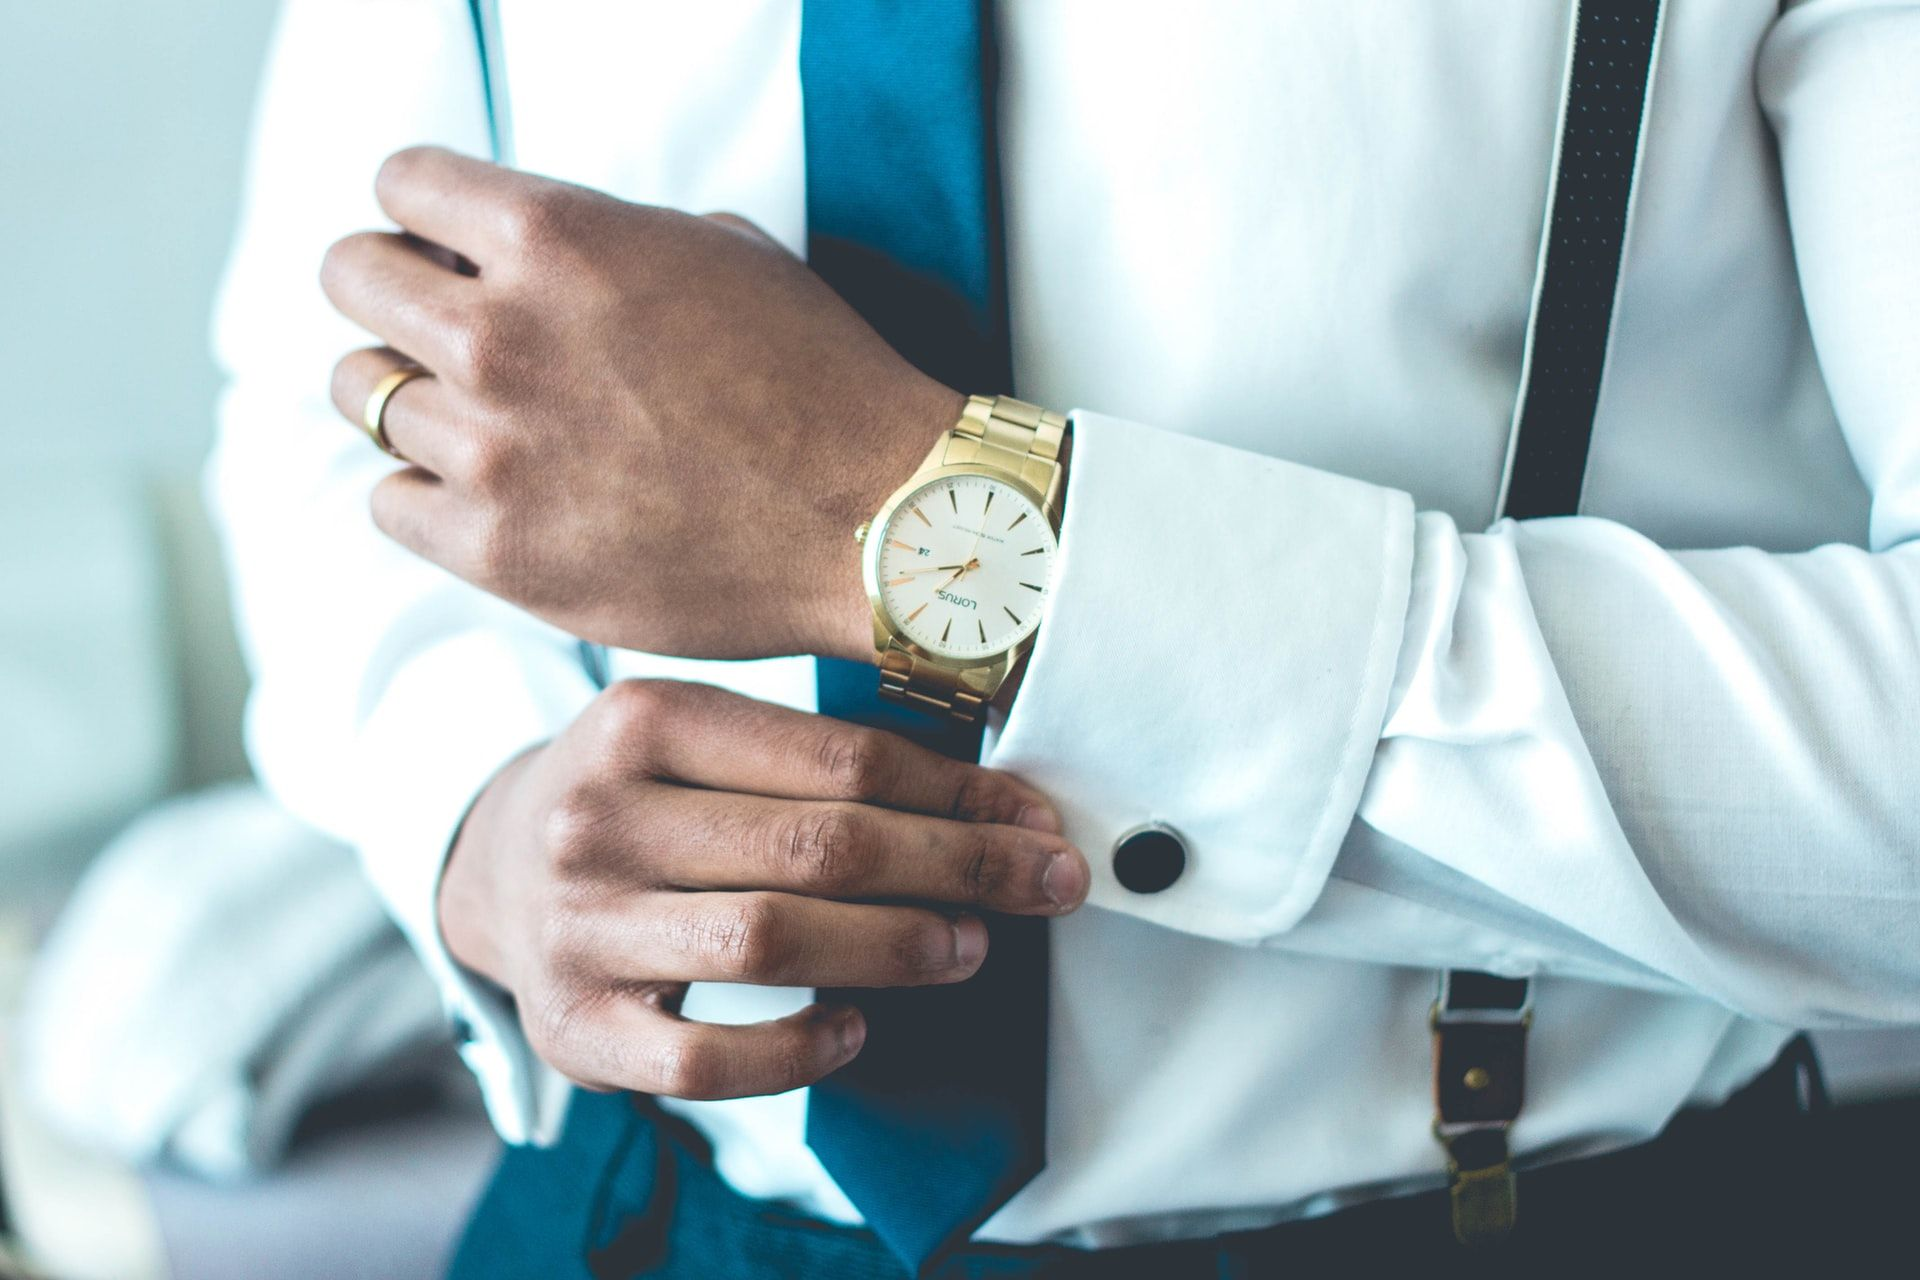 10 Surprising Facts About Watches